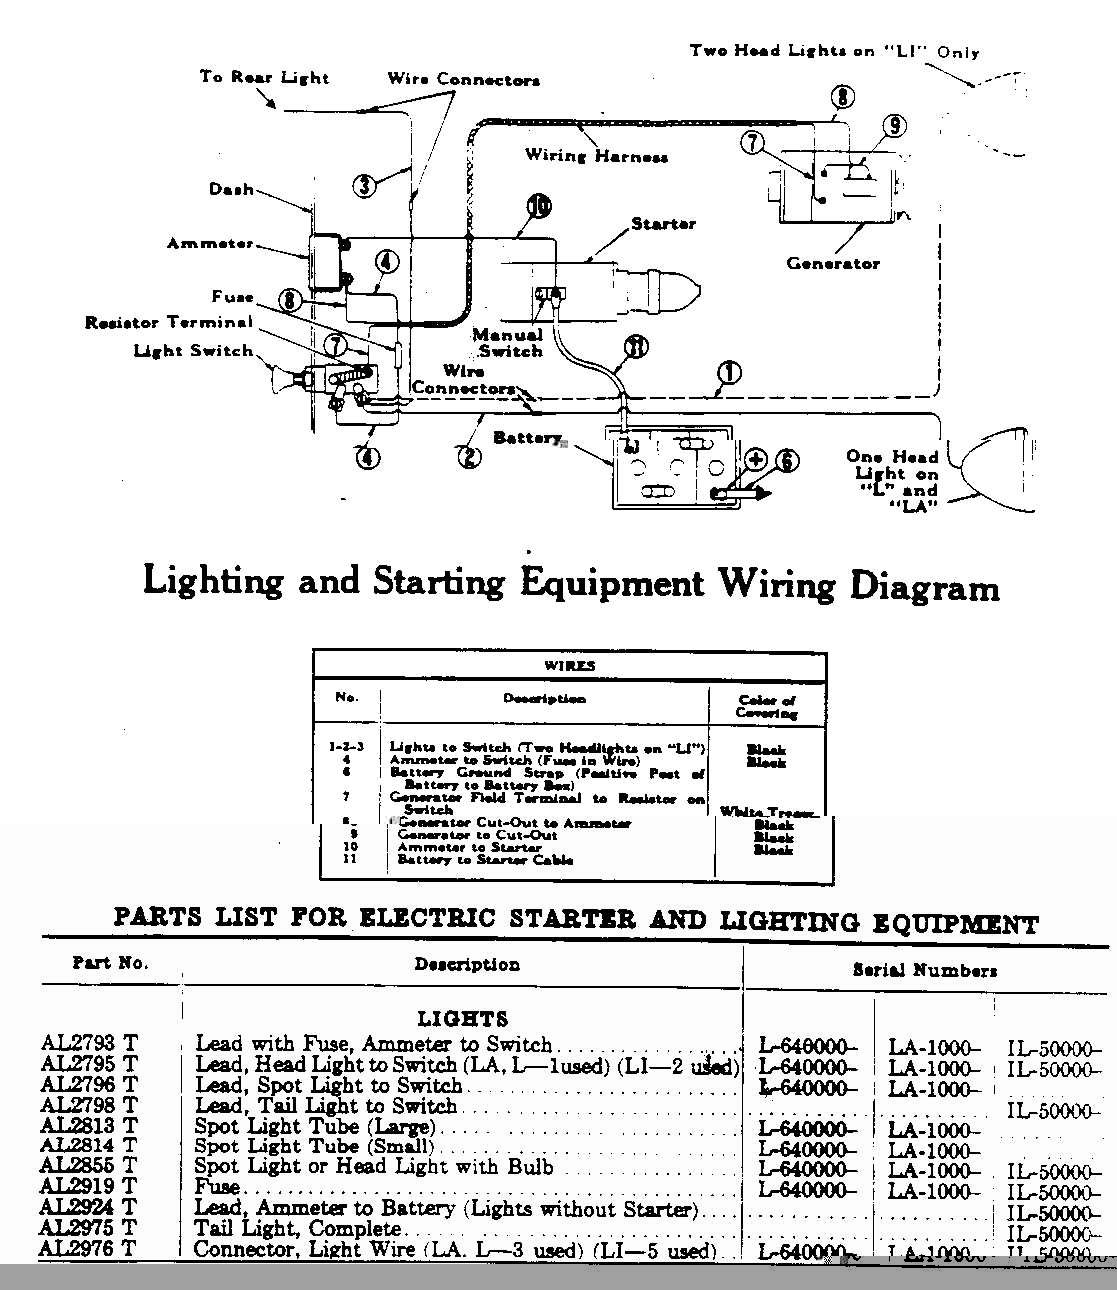 lwiring wiring diagram for 3600 ford tractor the wiring diagram case 220 wiring diagram at edmiracle.co